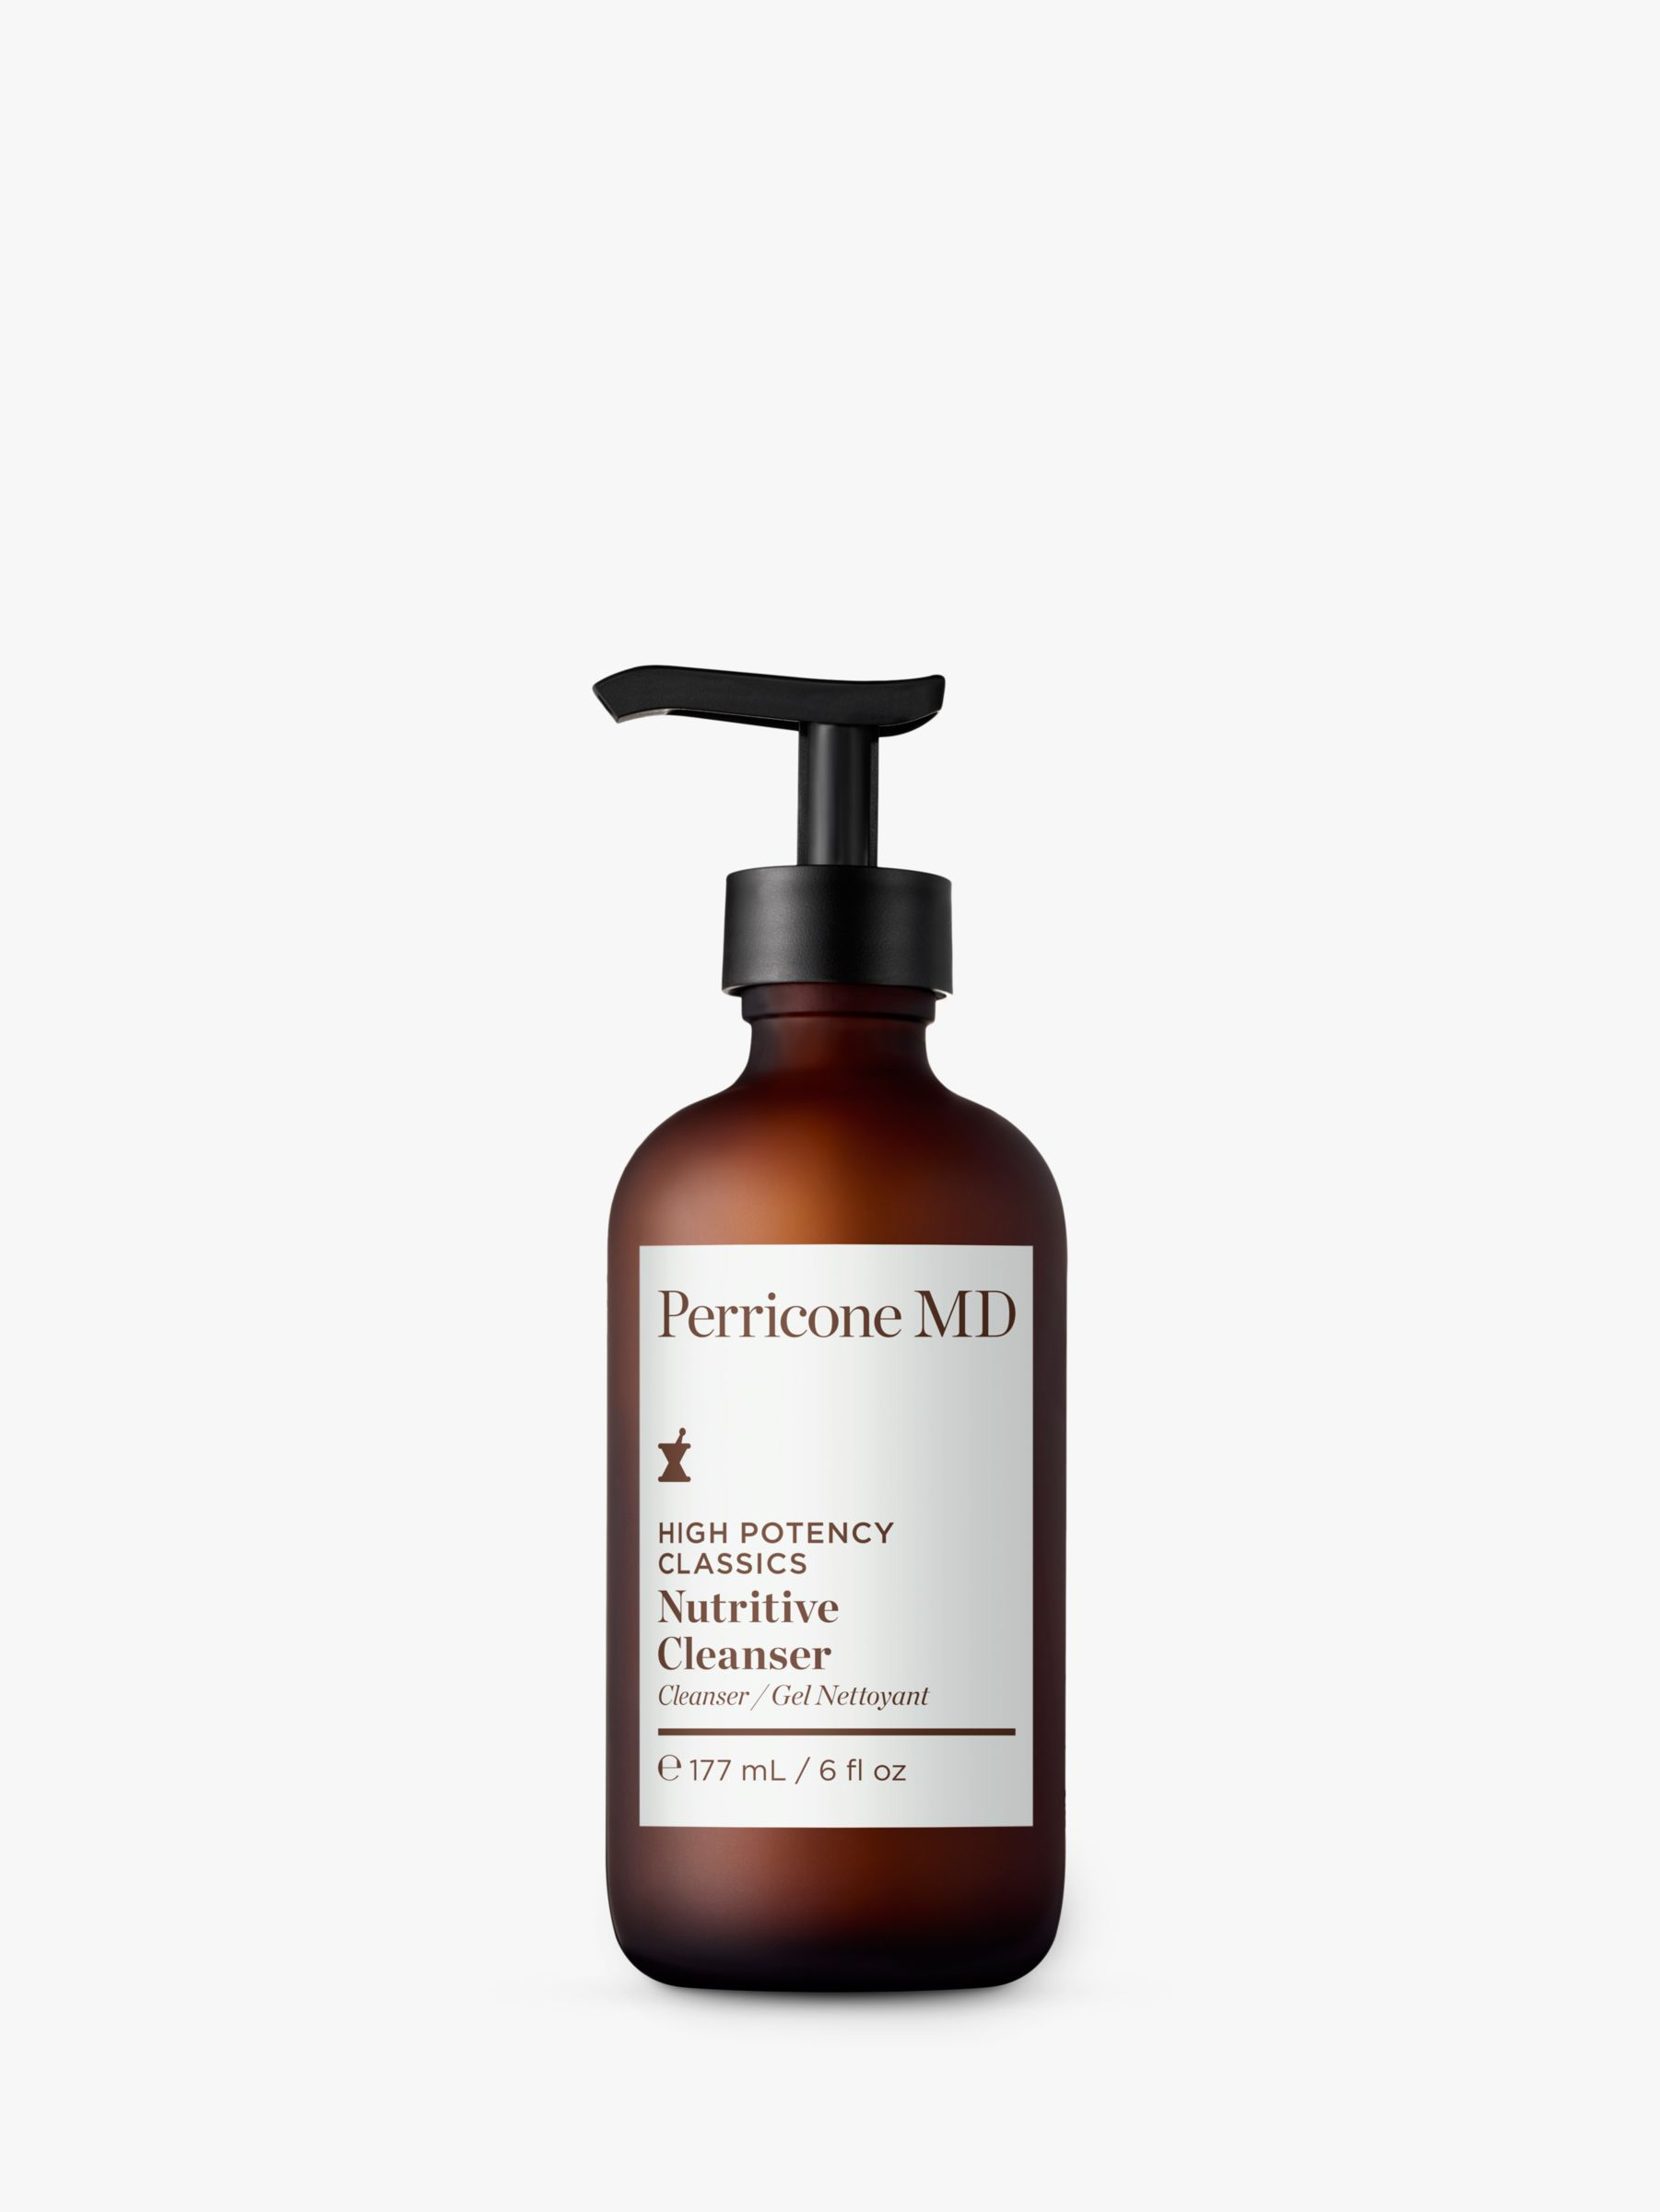 Perricone MD Perricone MD High Potency Classics Nutritive Cleanser, 177ml